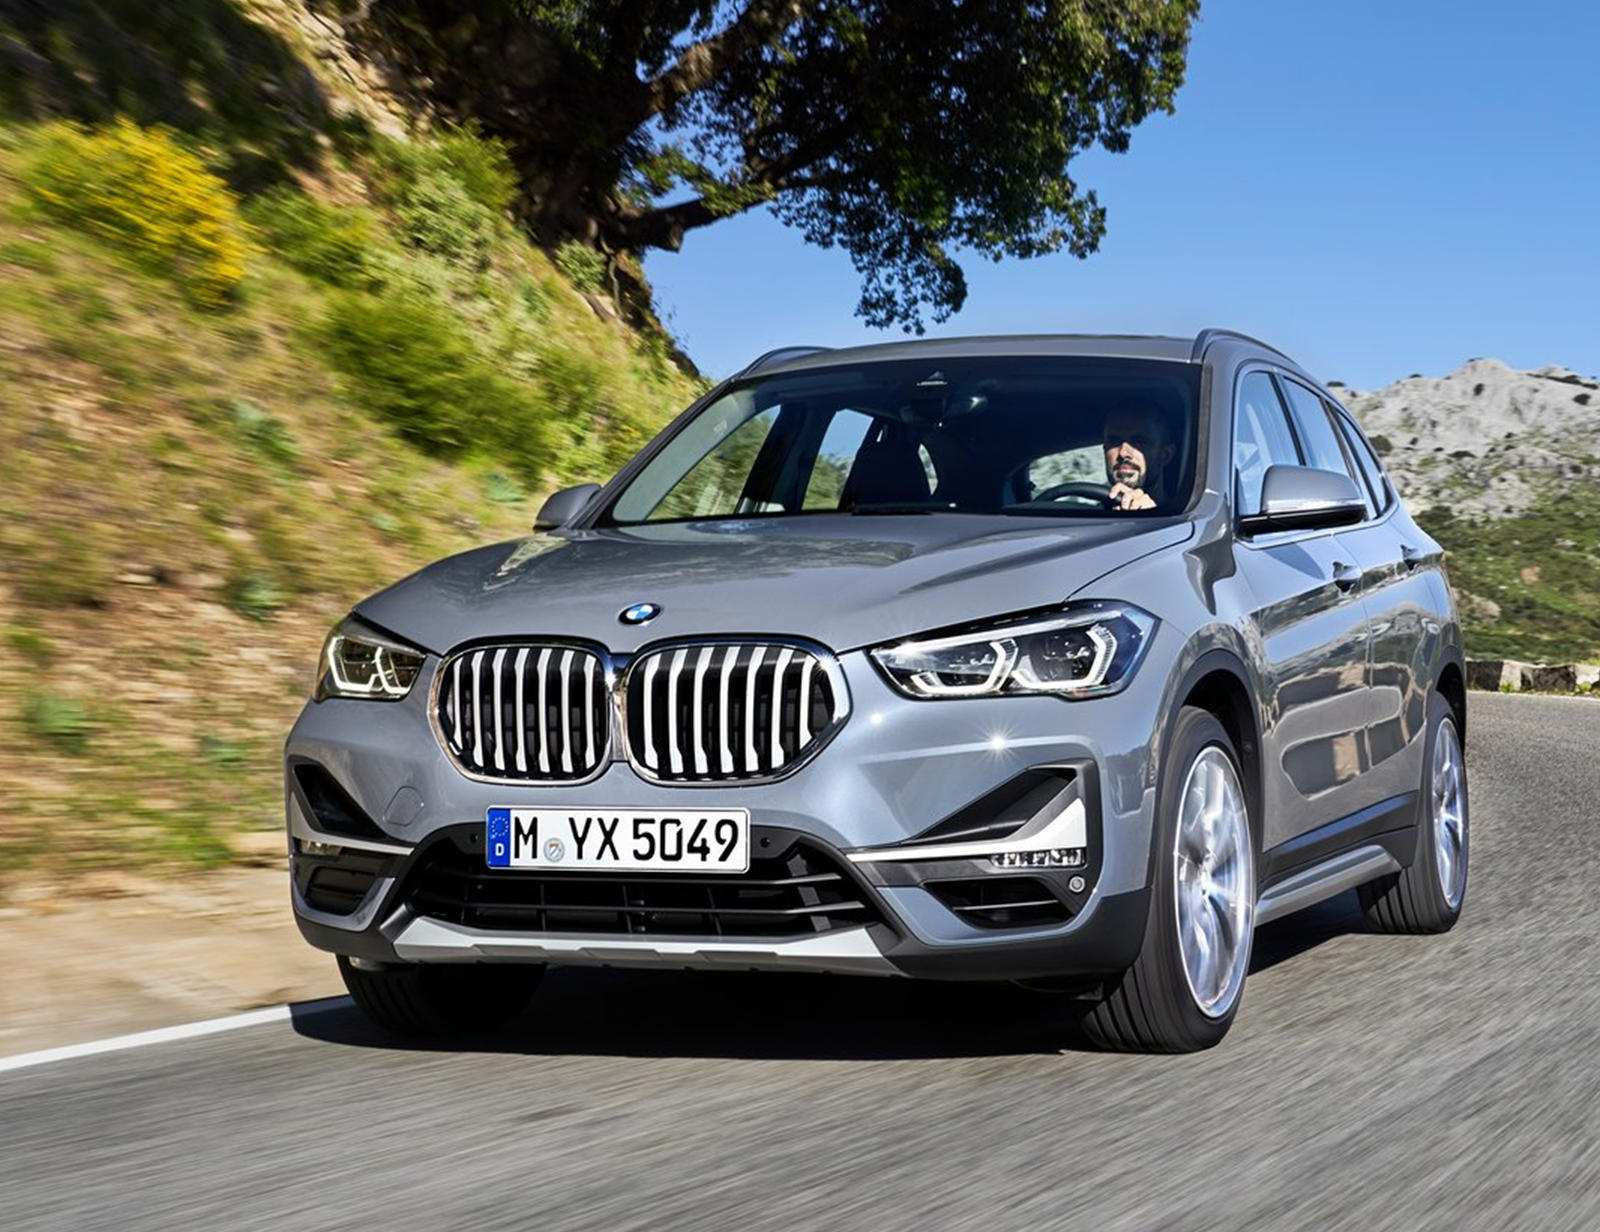 37 Best Review Bmw X1 2020 Facelift Price for Bmw X1 2020 Facelift